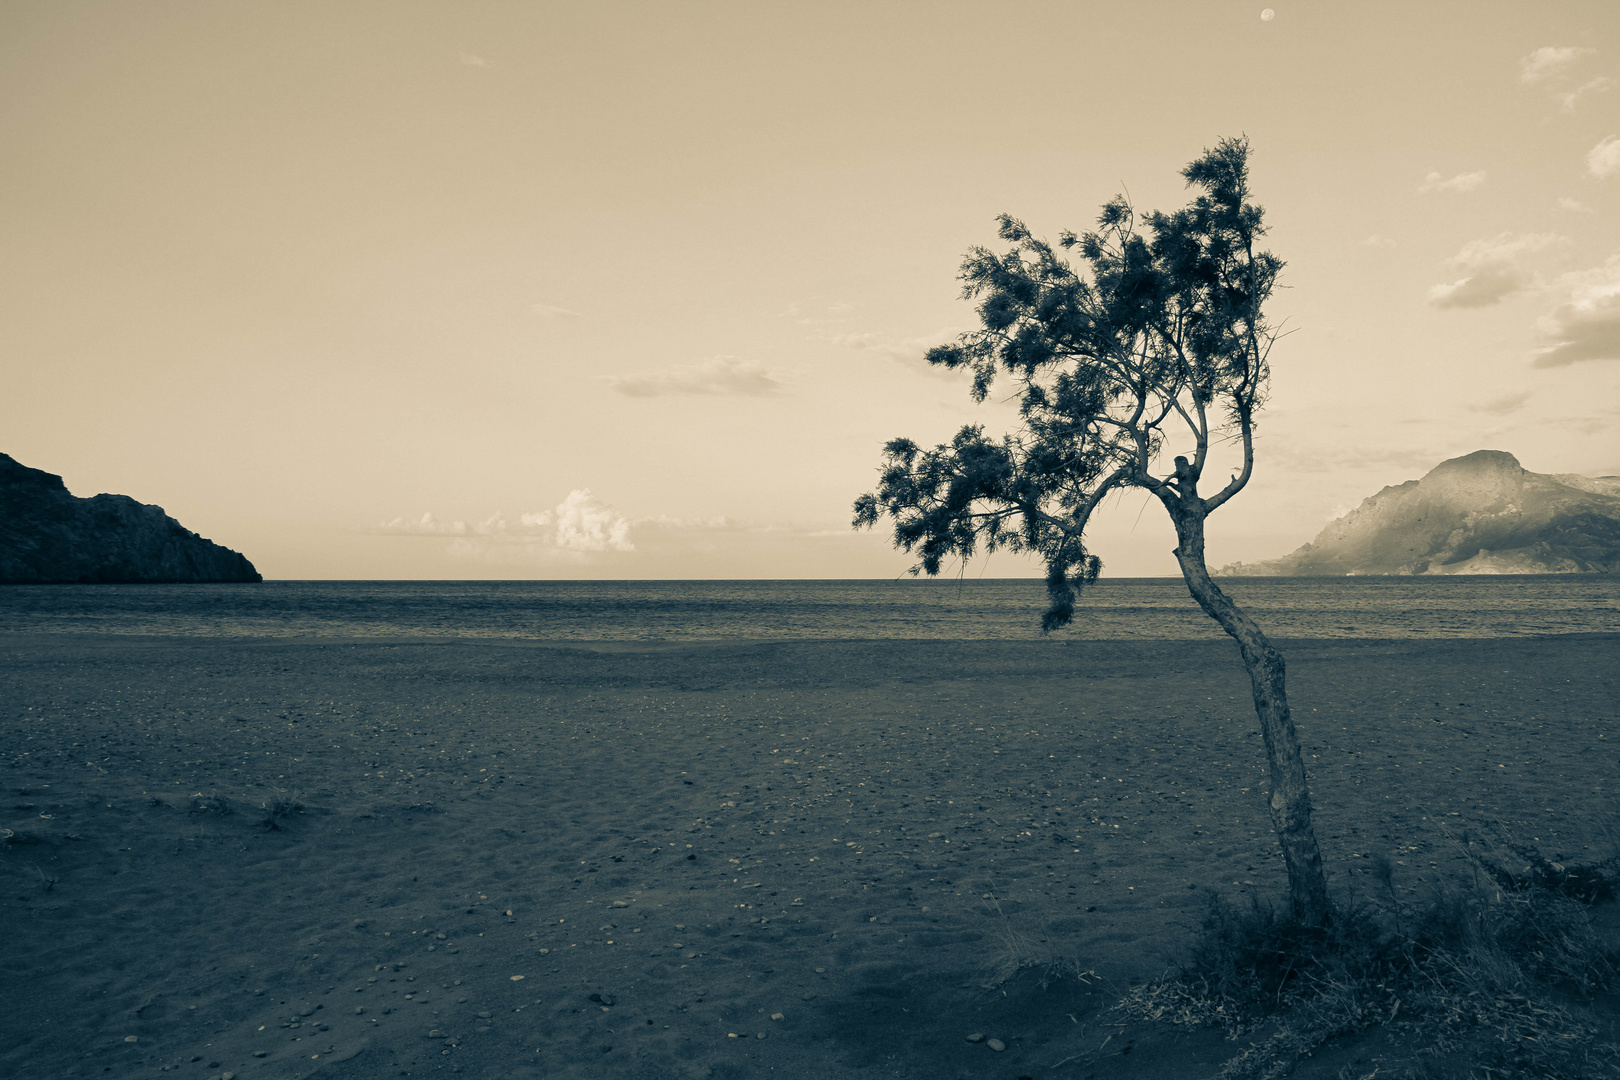 Lonely Tree by the Sea